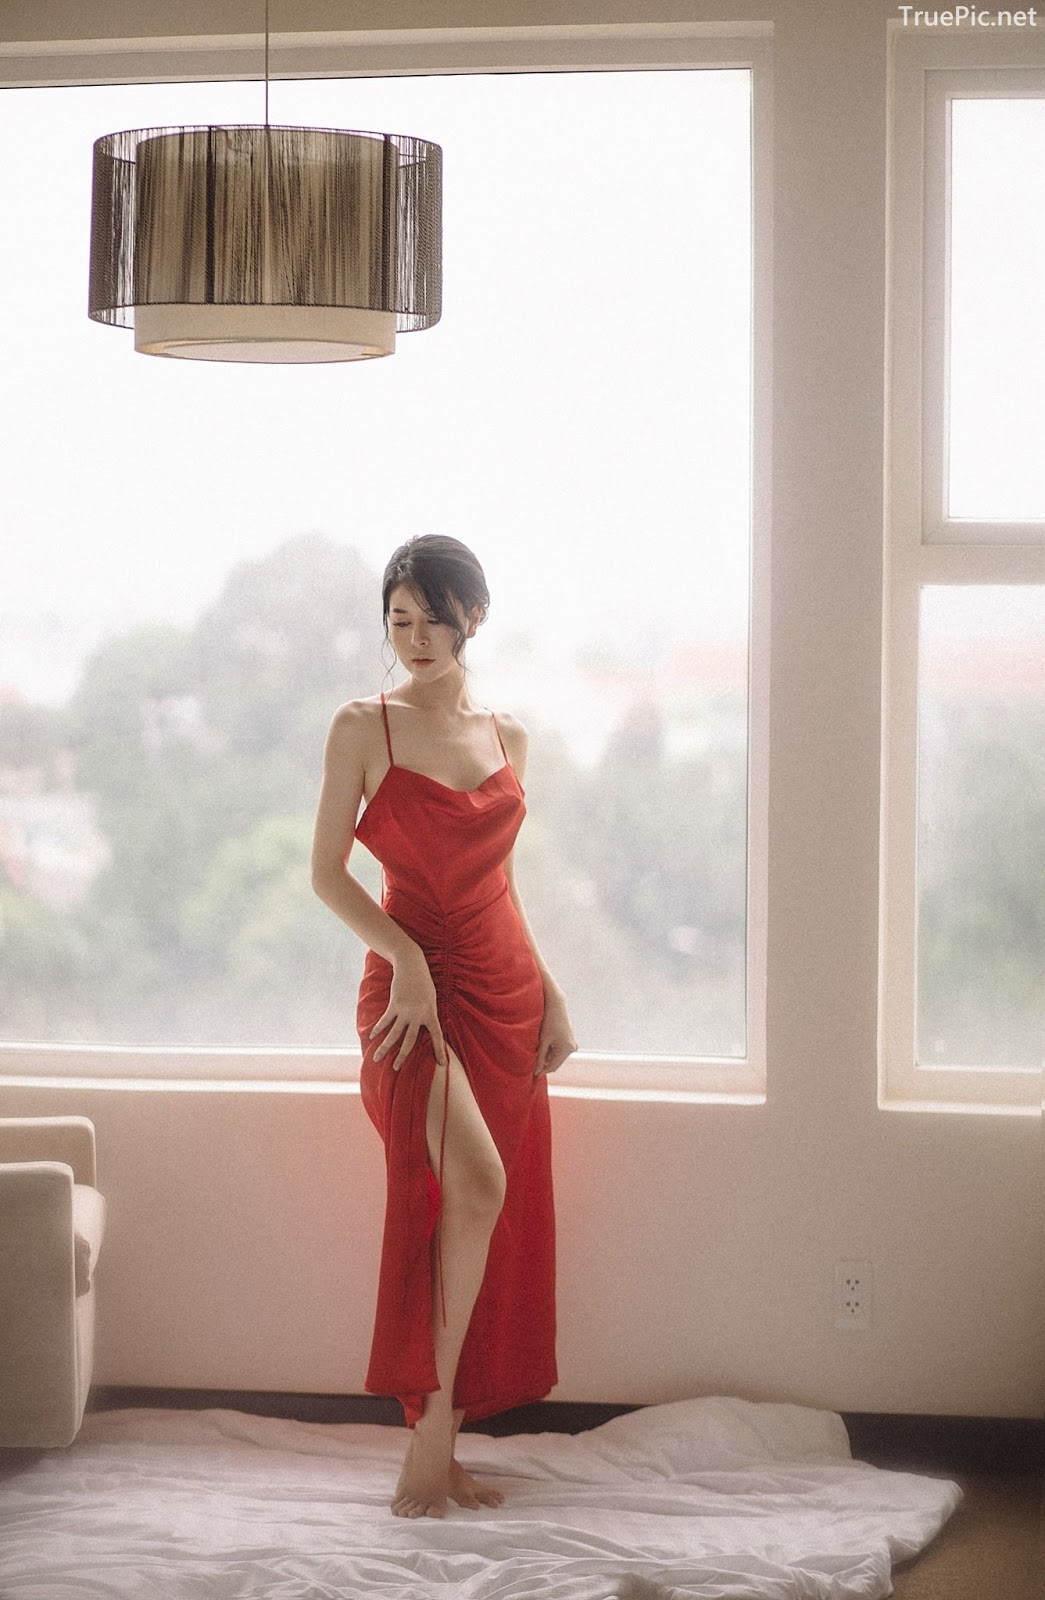 Vietnamese hot model - The beauty of Women with Red Camisole Dress - Photo by Linh Phan - Picture 5